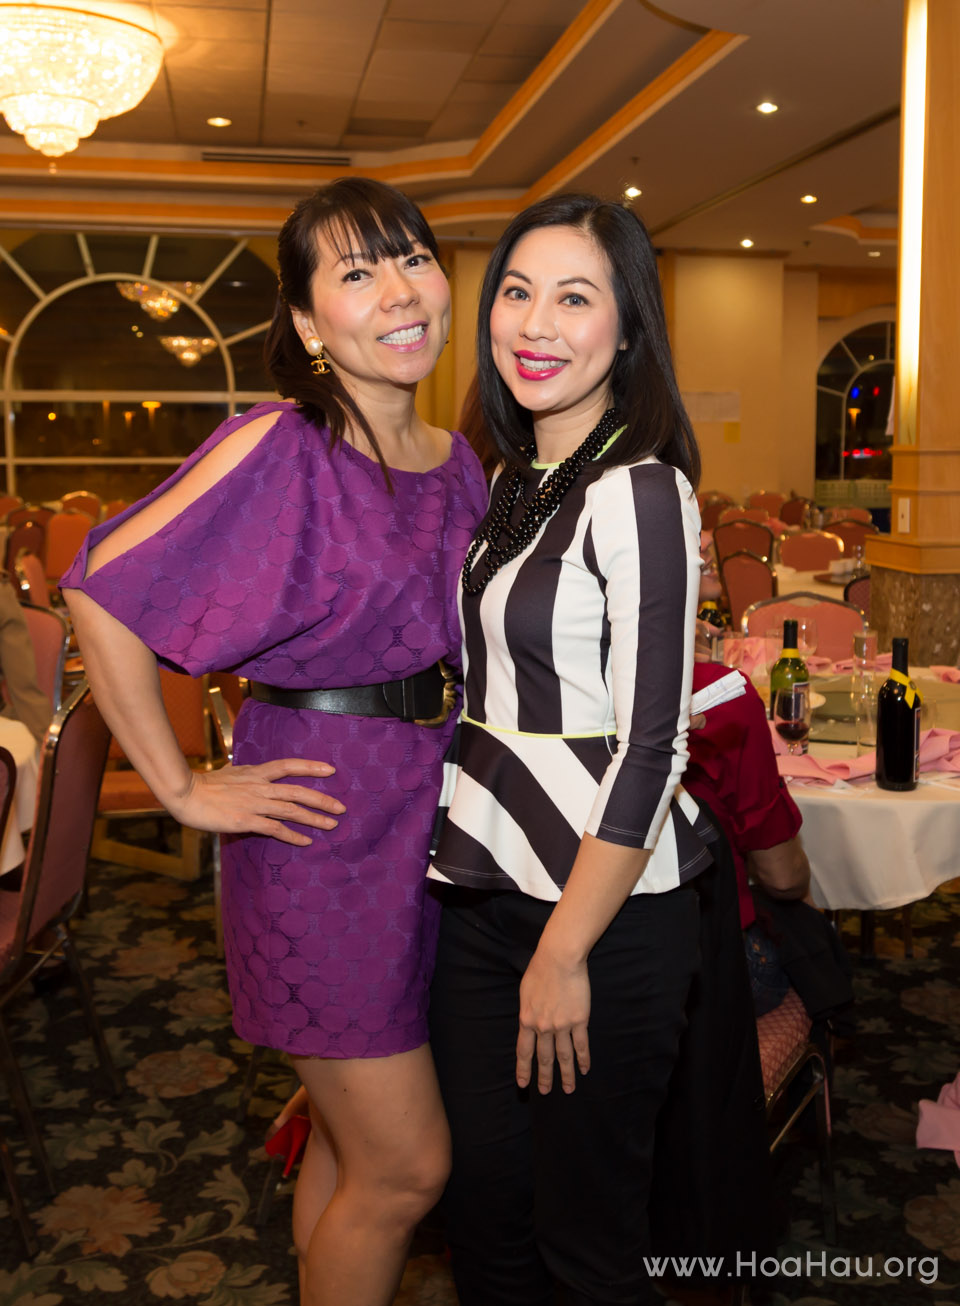 Madison Nguyen for San Jose Major Campaign Kick-off 2013 - Image 179